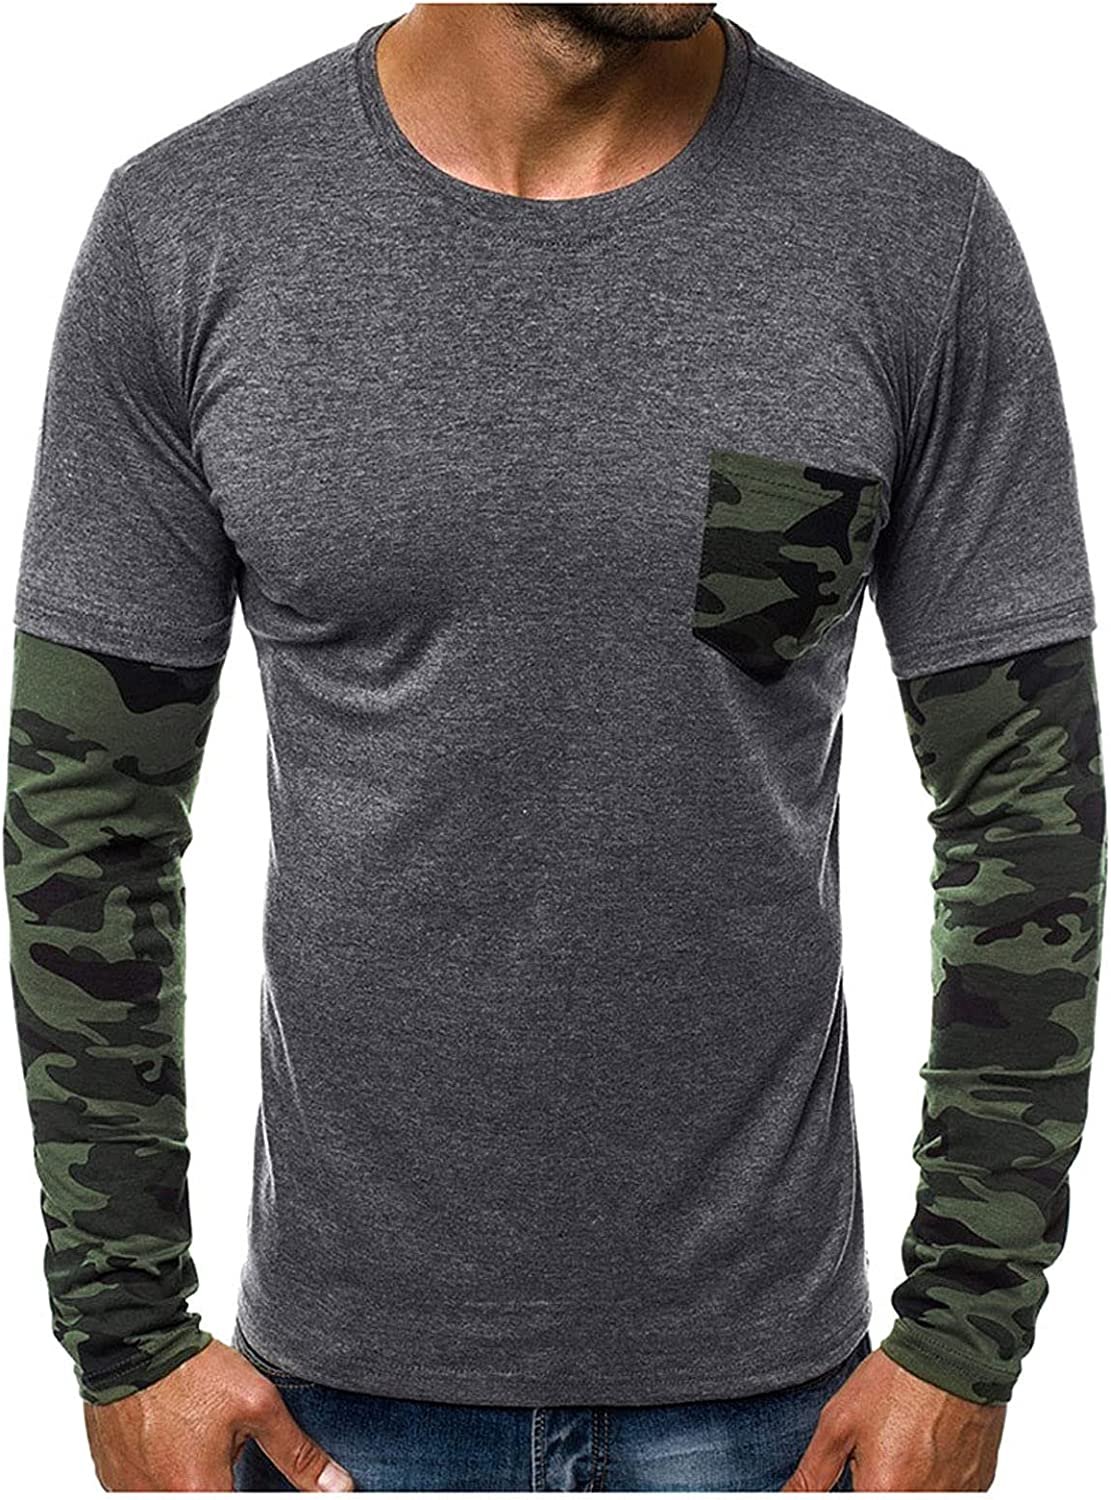 Long Sleeve Tee Shirts for Men,Work Shirts with Pocket Camouflage Printed Classic Summer Slim Casual Top Blouse